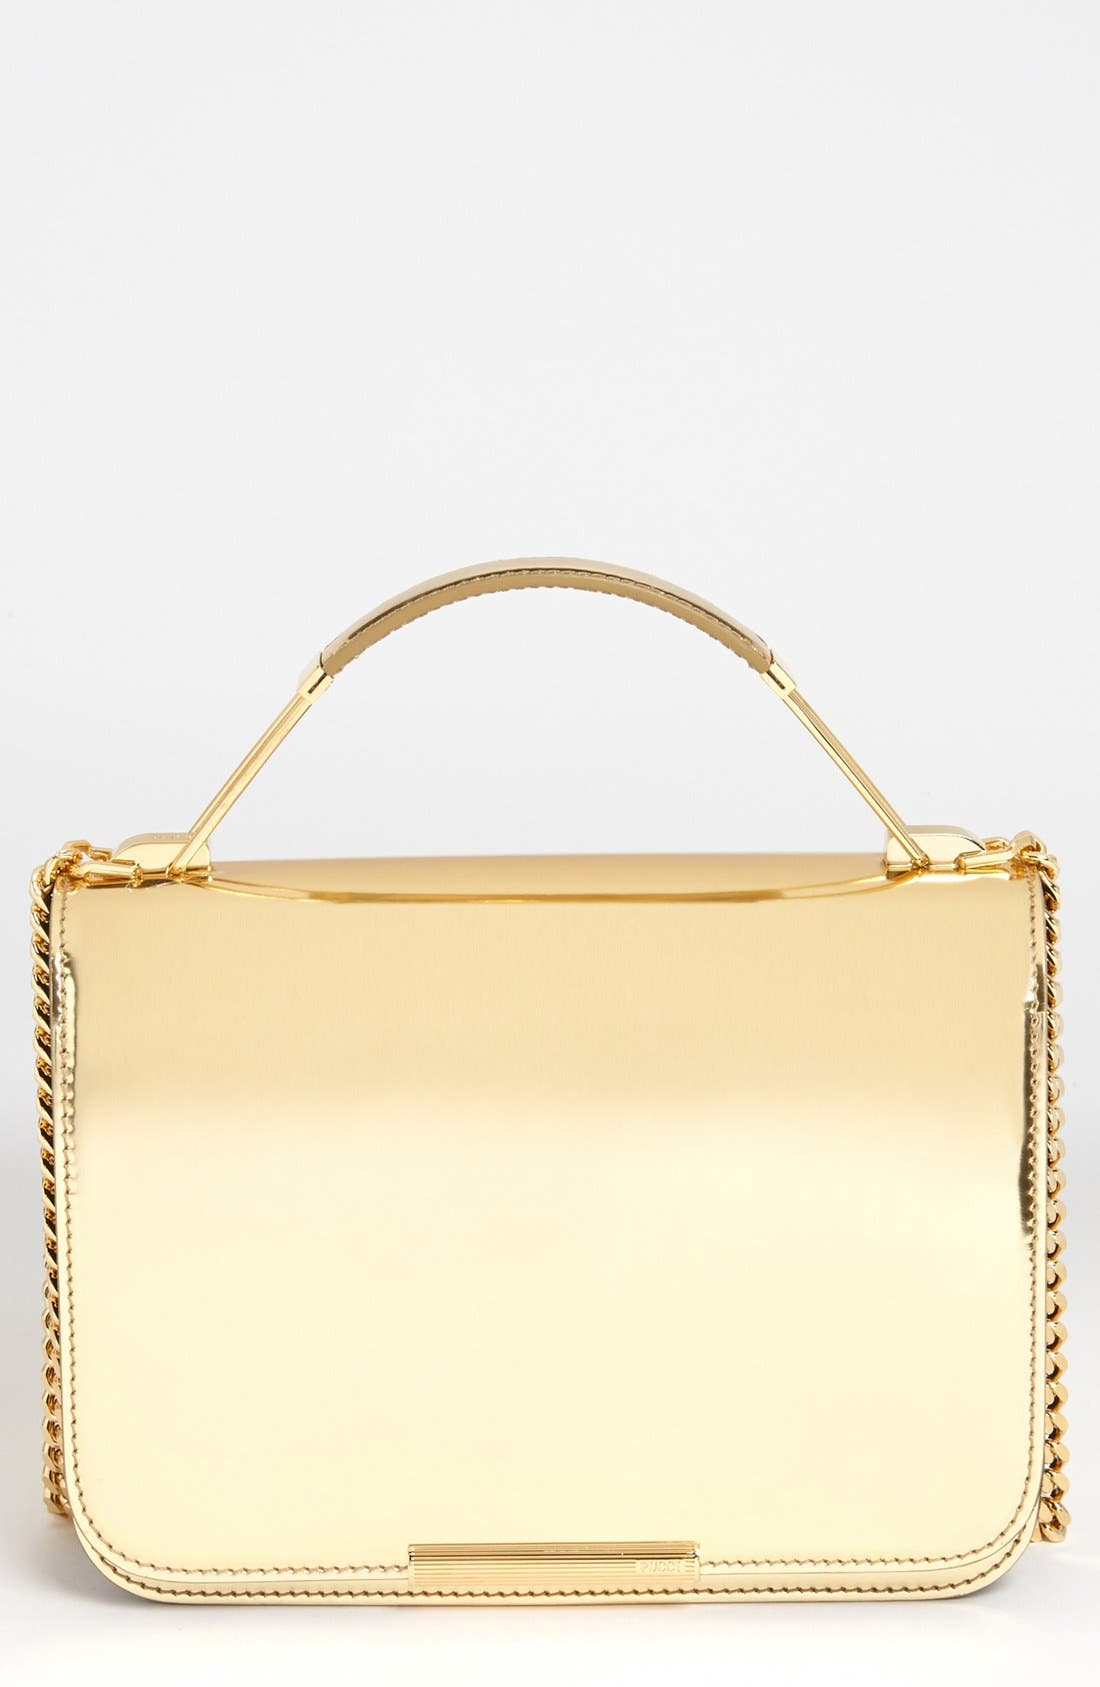 Alternate Image 1 Selected - Emilio Pucci 'Newton Laminated - Small' Partitioned Leather Shoulder Bag